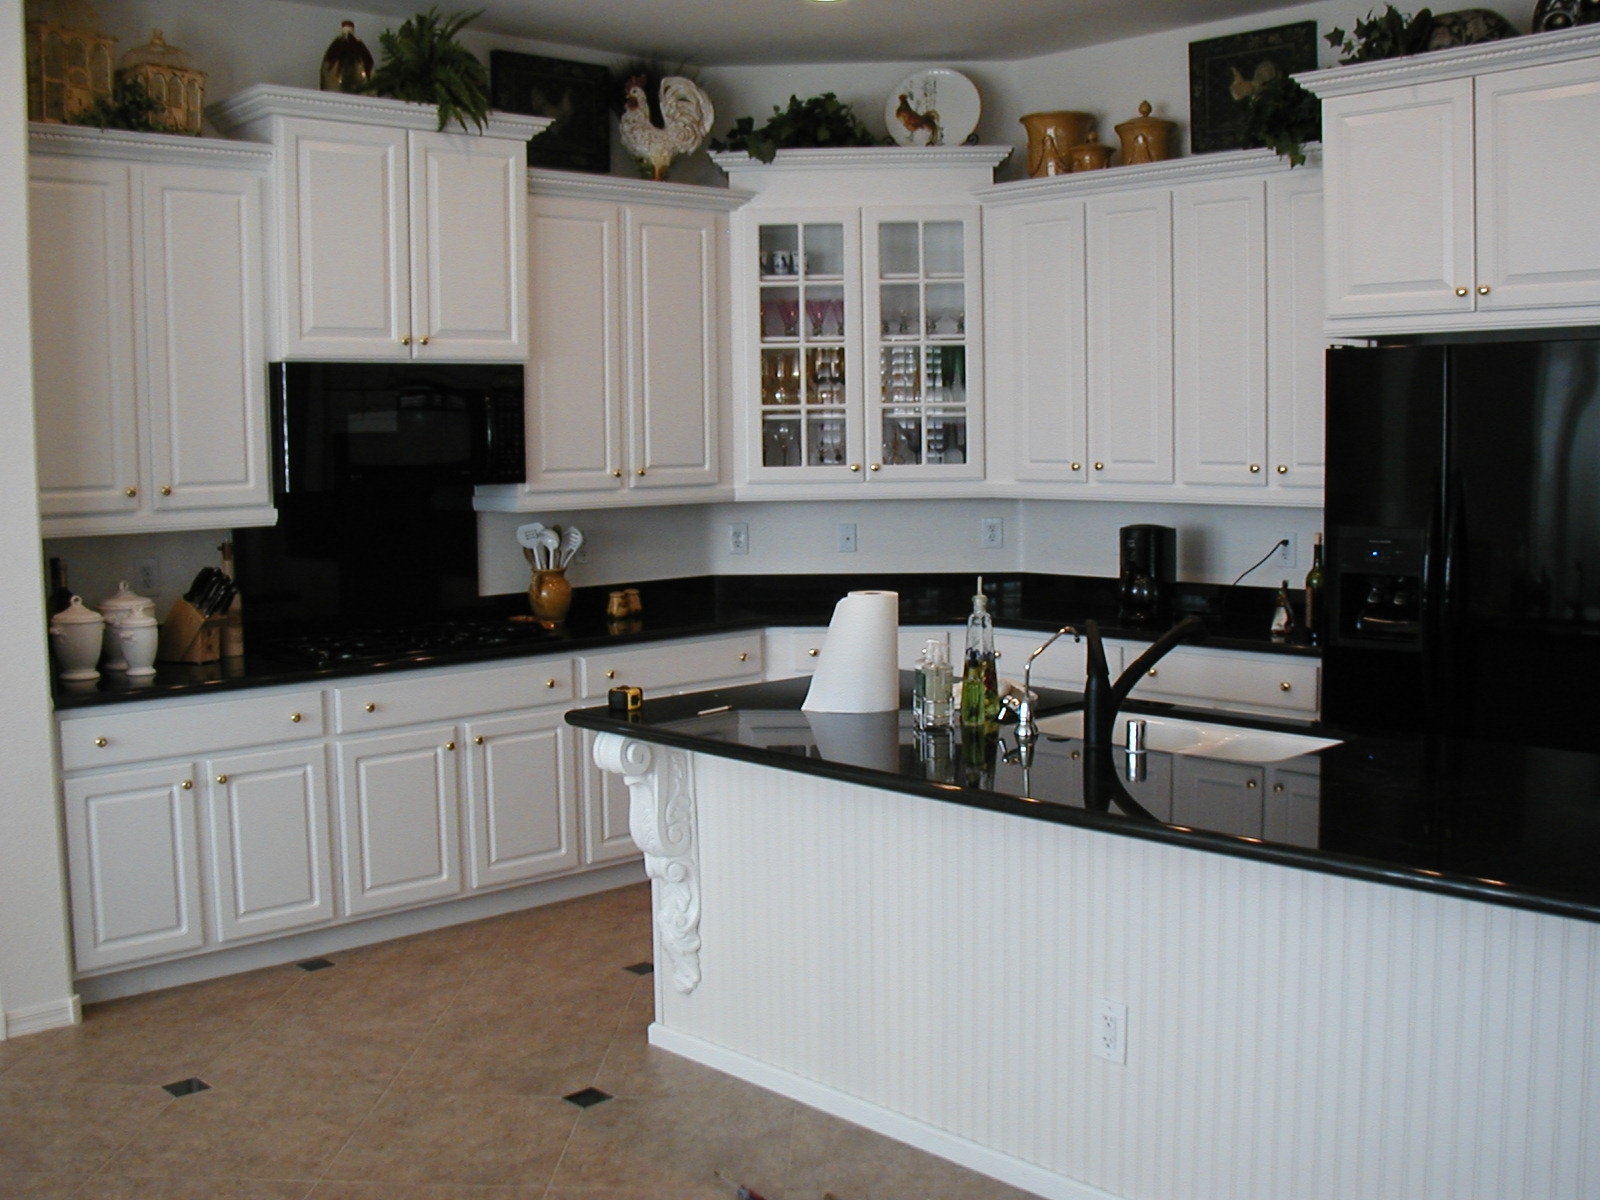 White Kitchen with Black Appliances 1600 x 1200